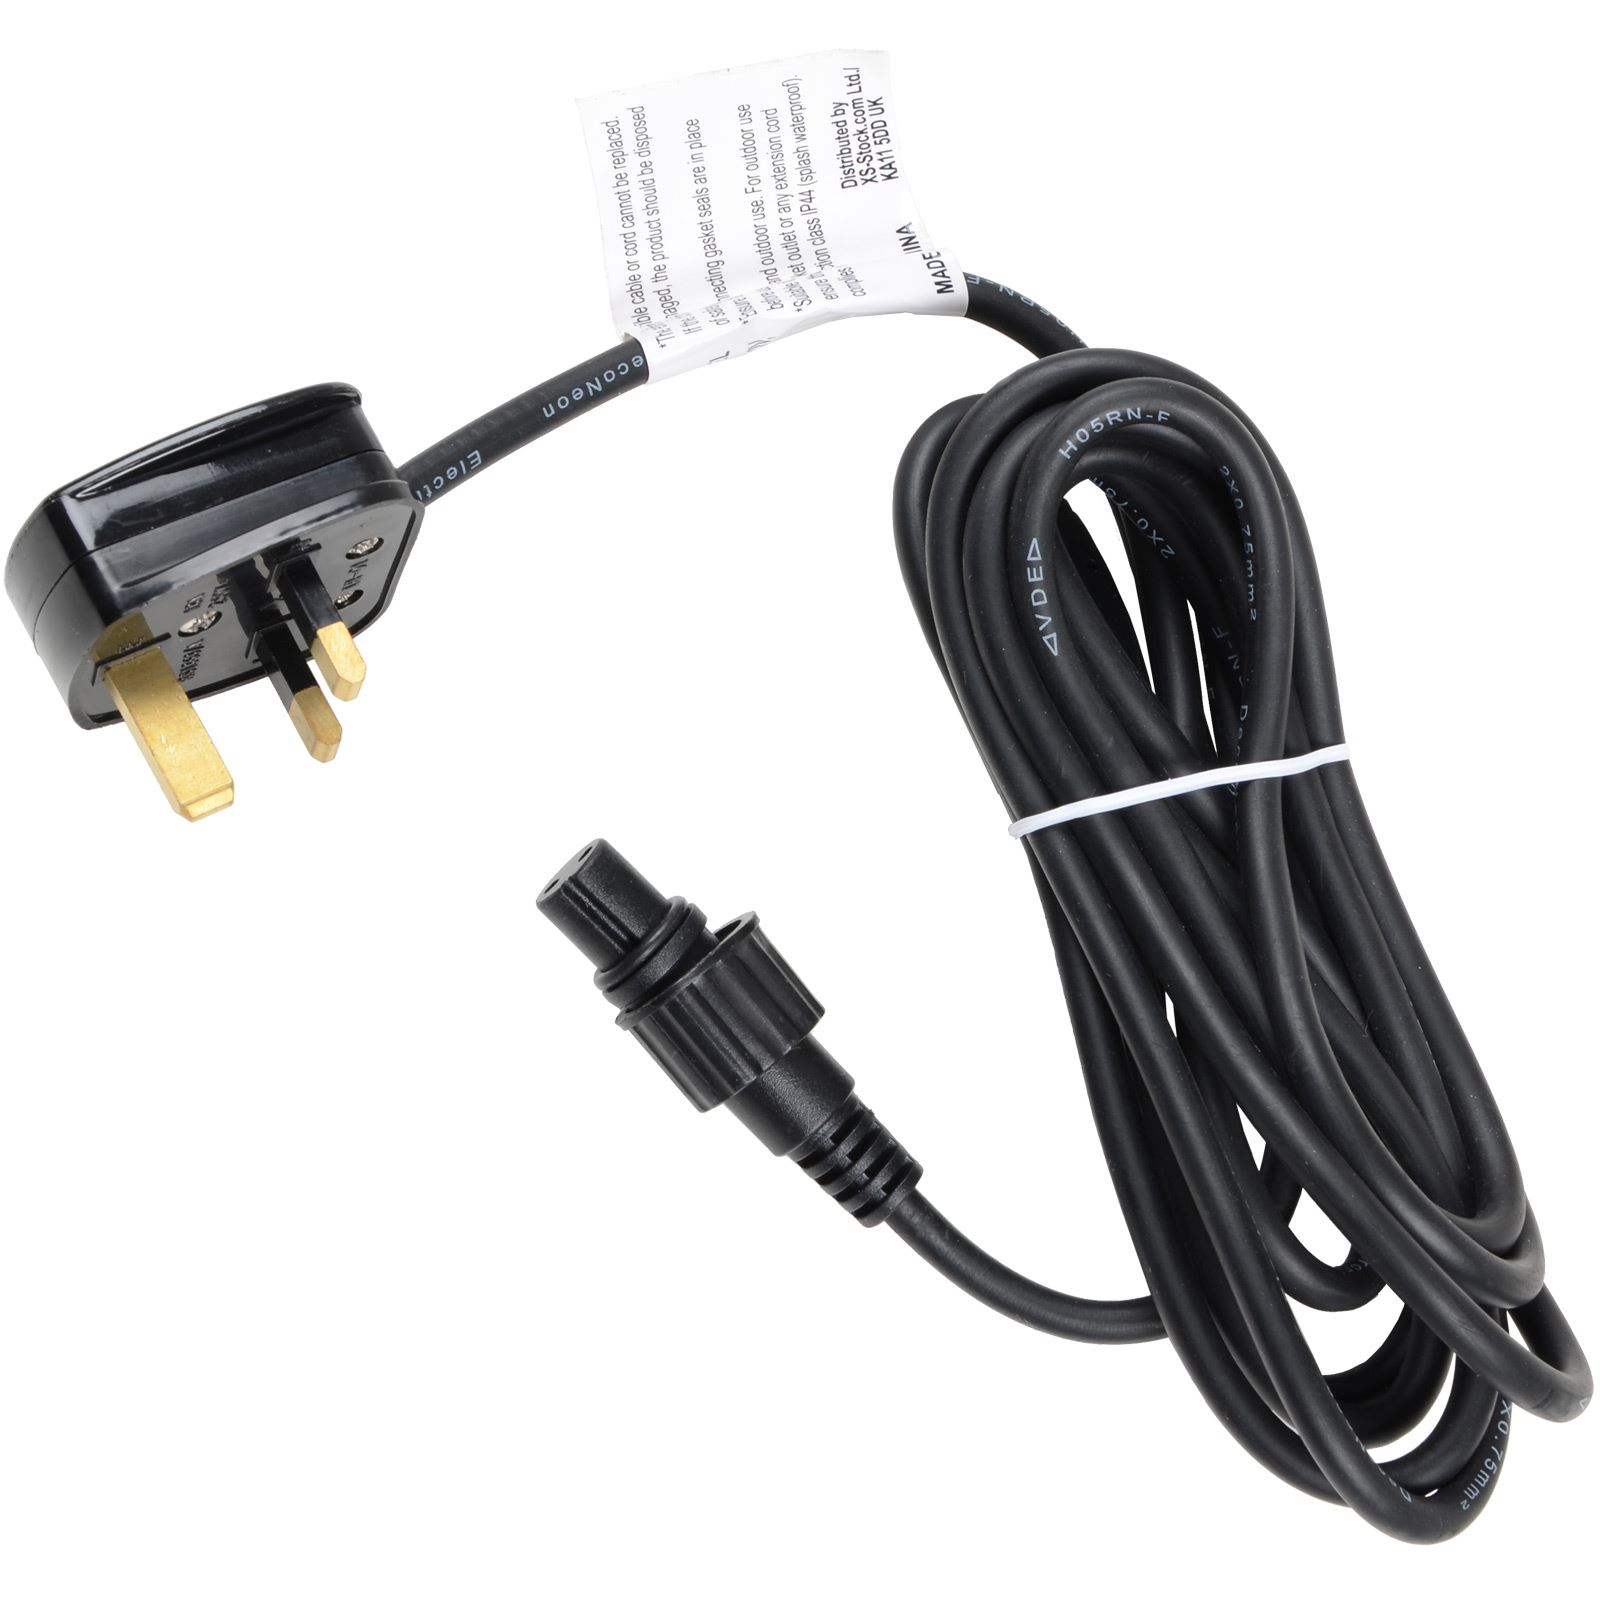 power cord 3m cable black for sparkles connectable lights mains plug